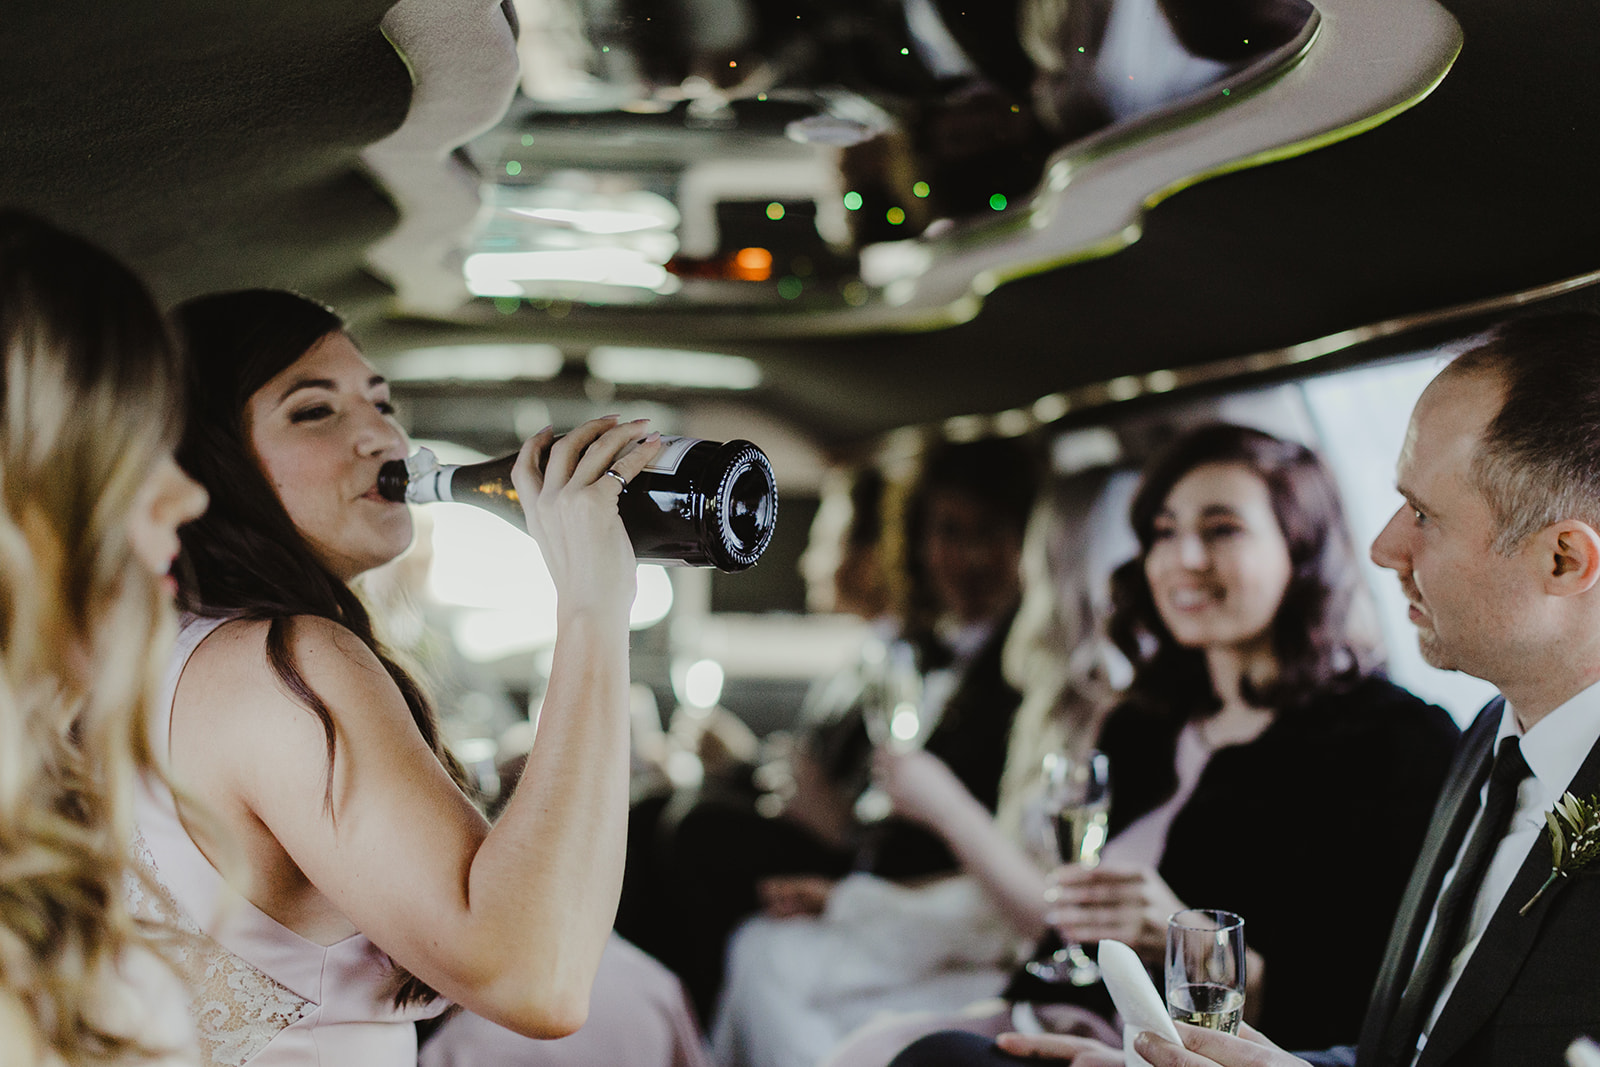 A wedding part celebrating in a limo after a wedding ceremony